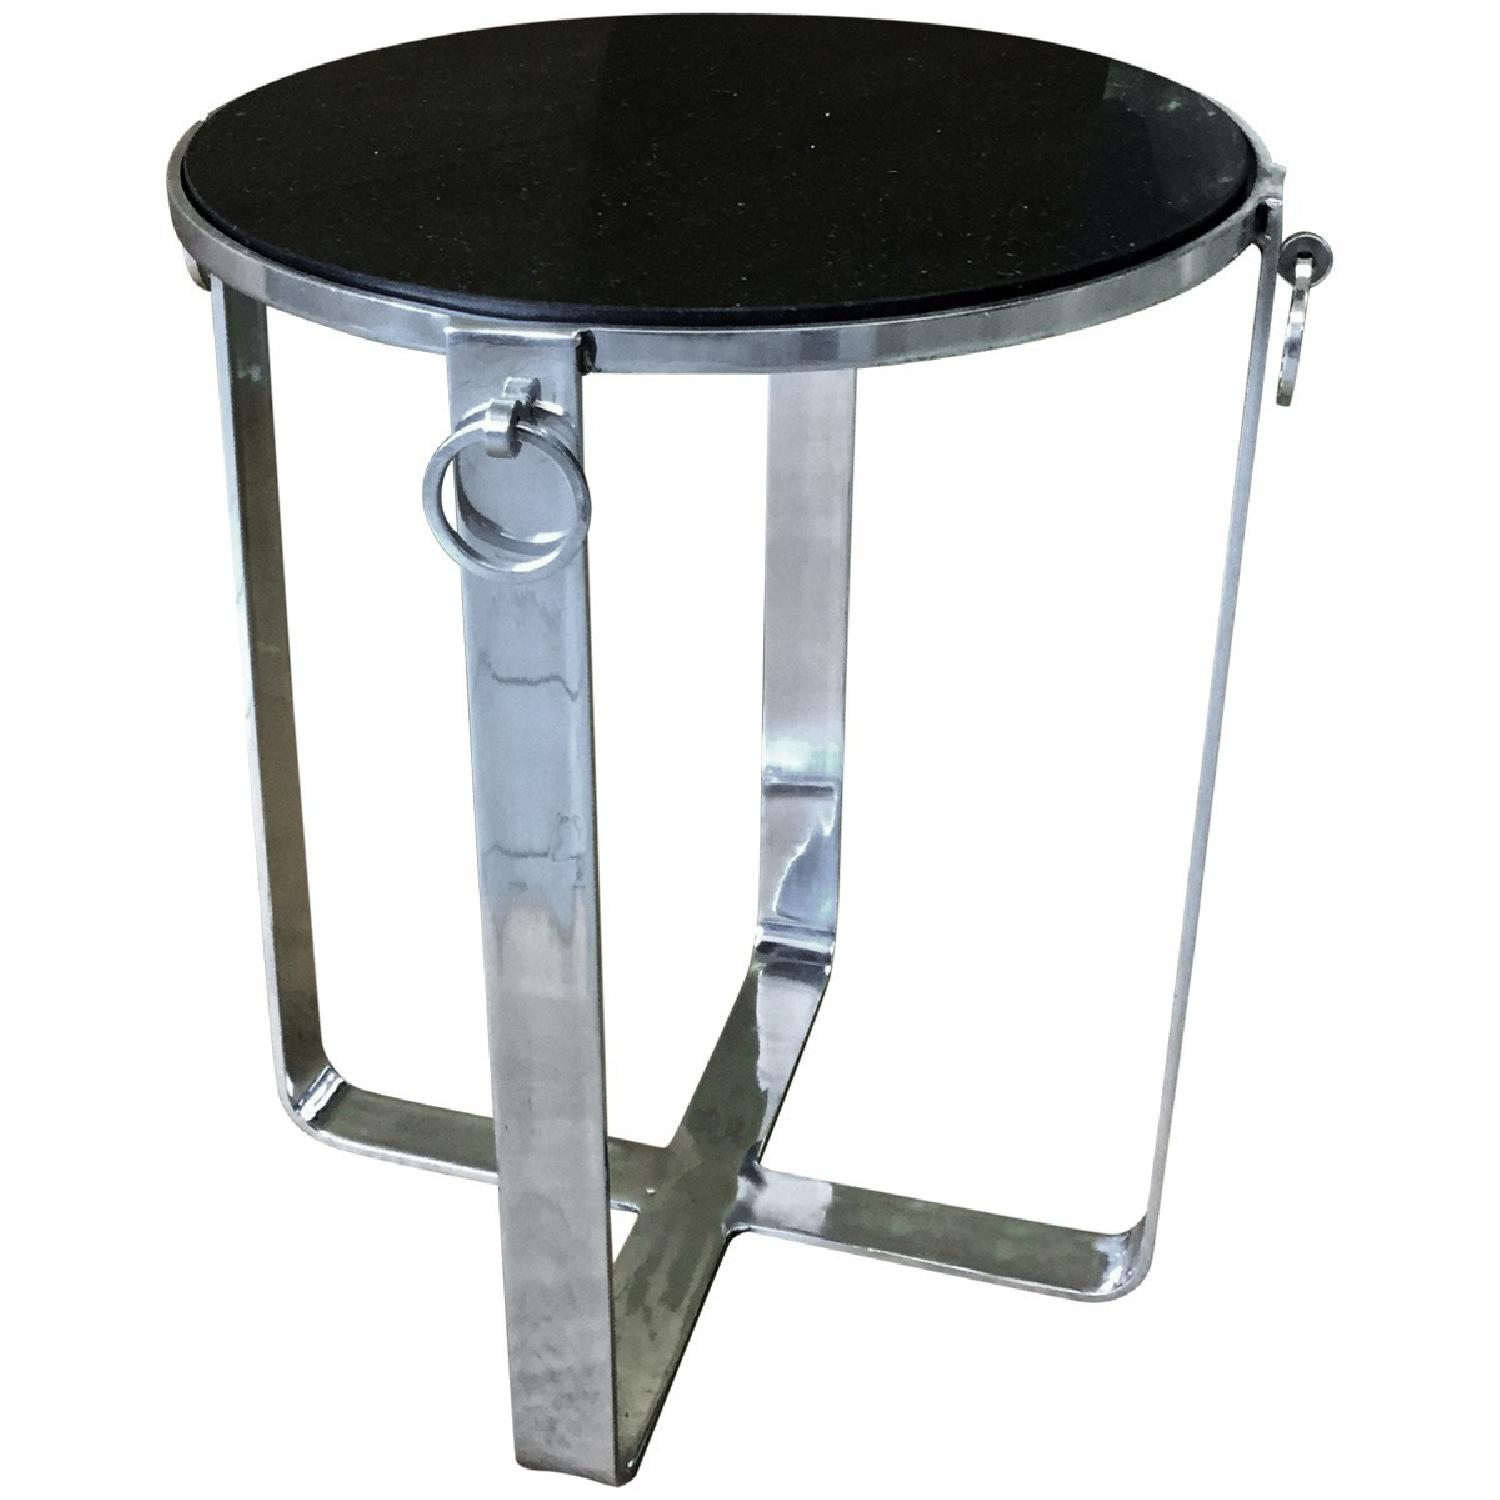 Metal Round Side Table w/ Glass Top - image-1